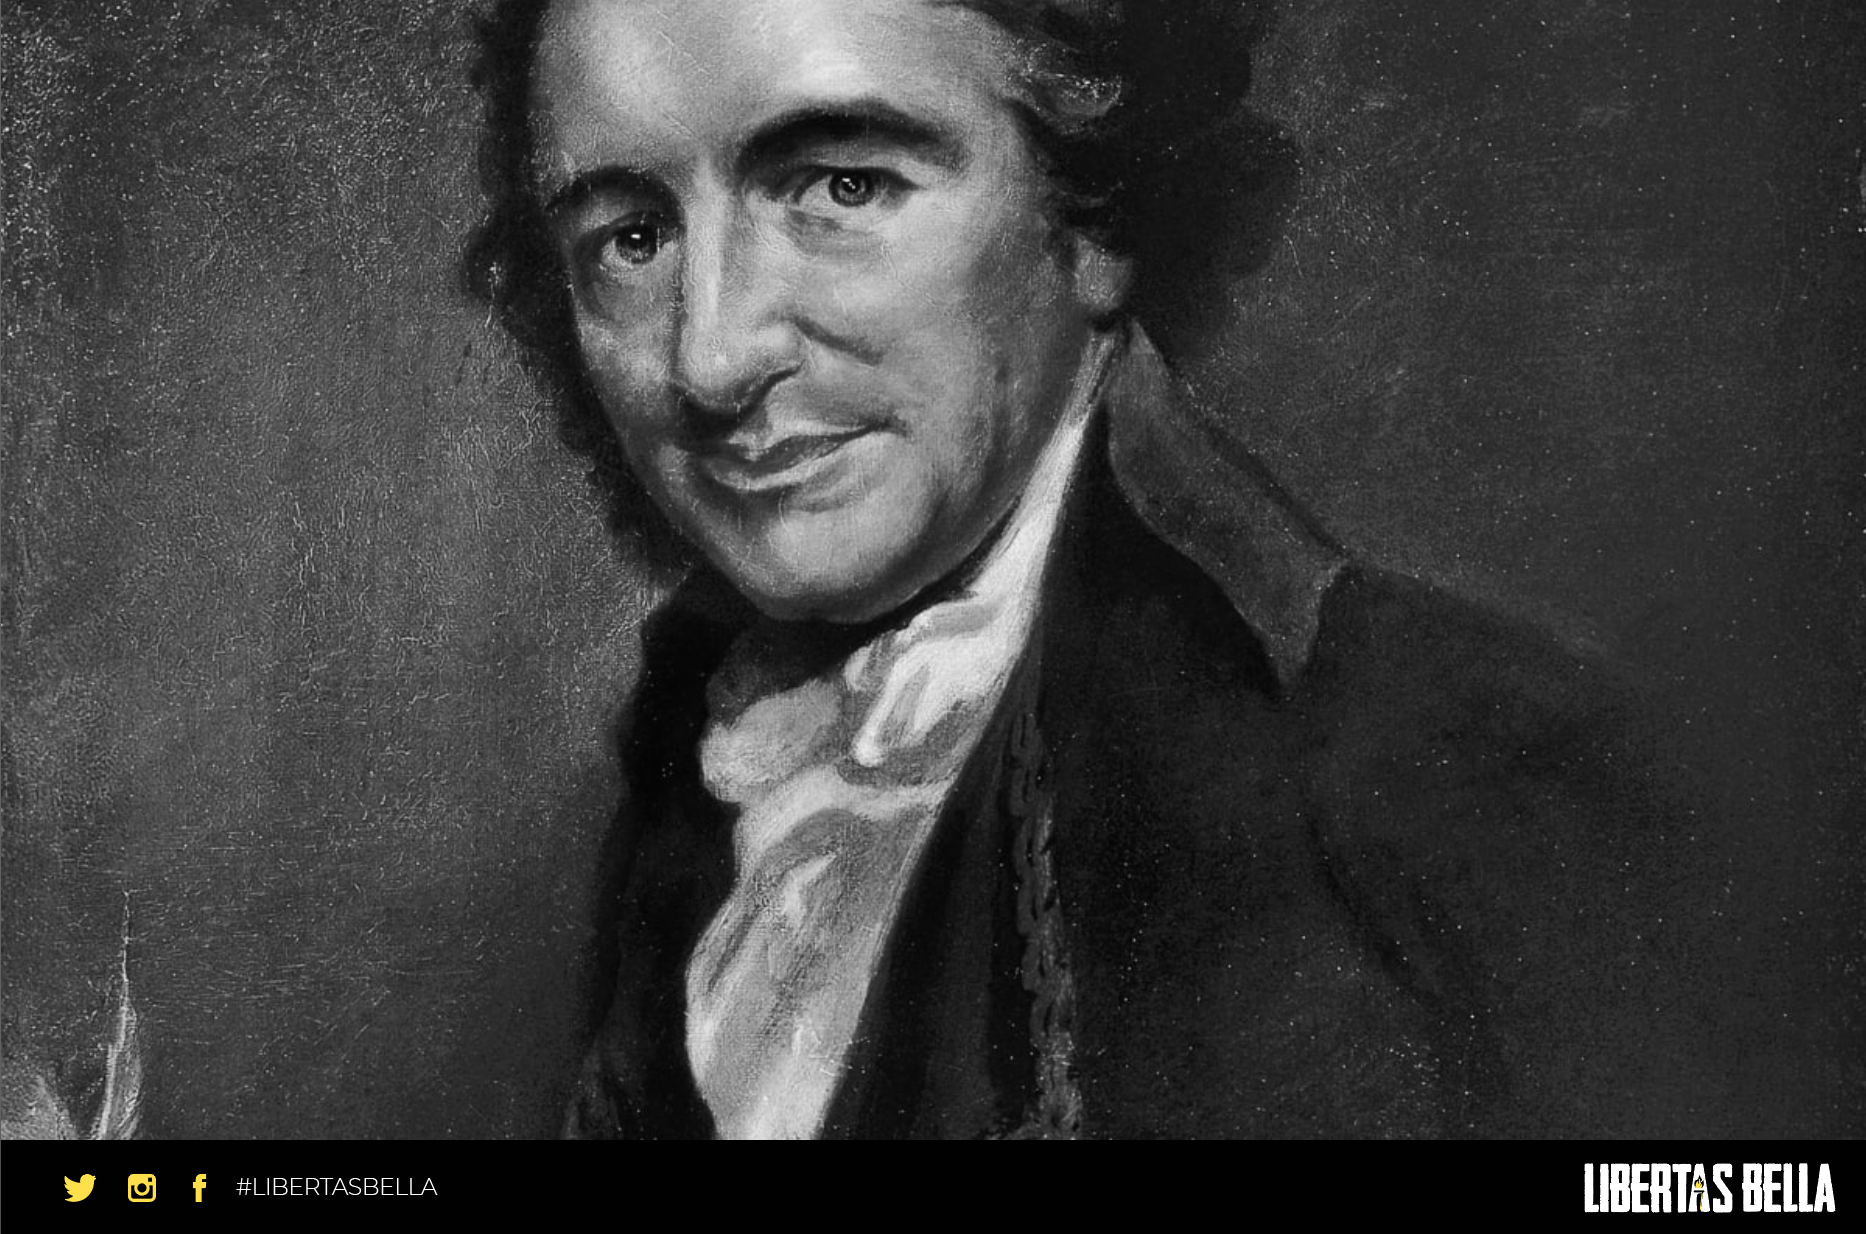 Thomas Paine Quotes - grayscale version of a painting of Thomas Paine